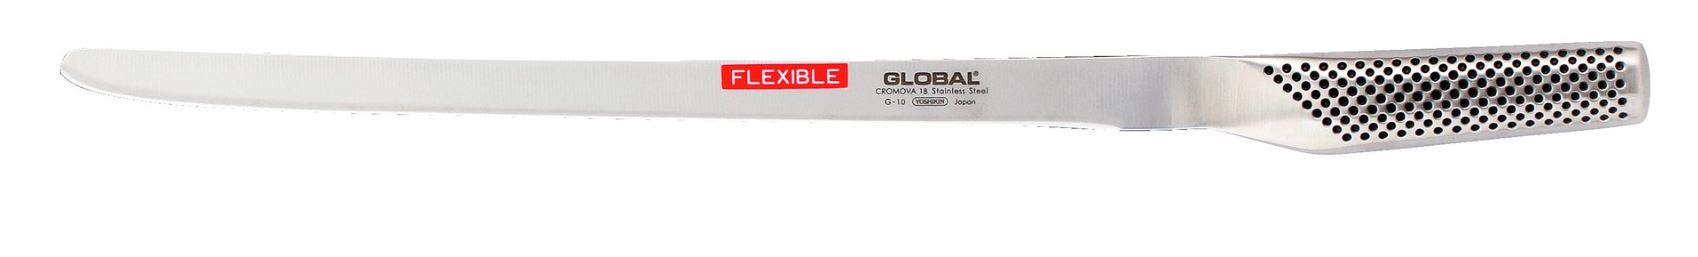 "Global G-10 11.75"" Flexible Slicer (Online Only)"